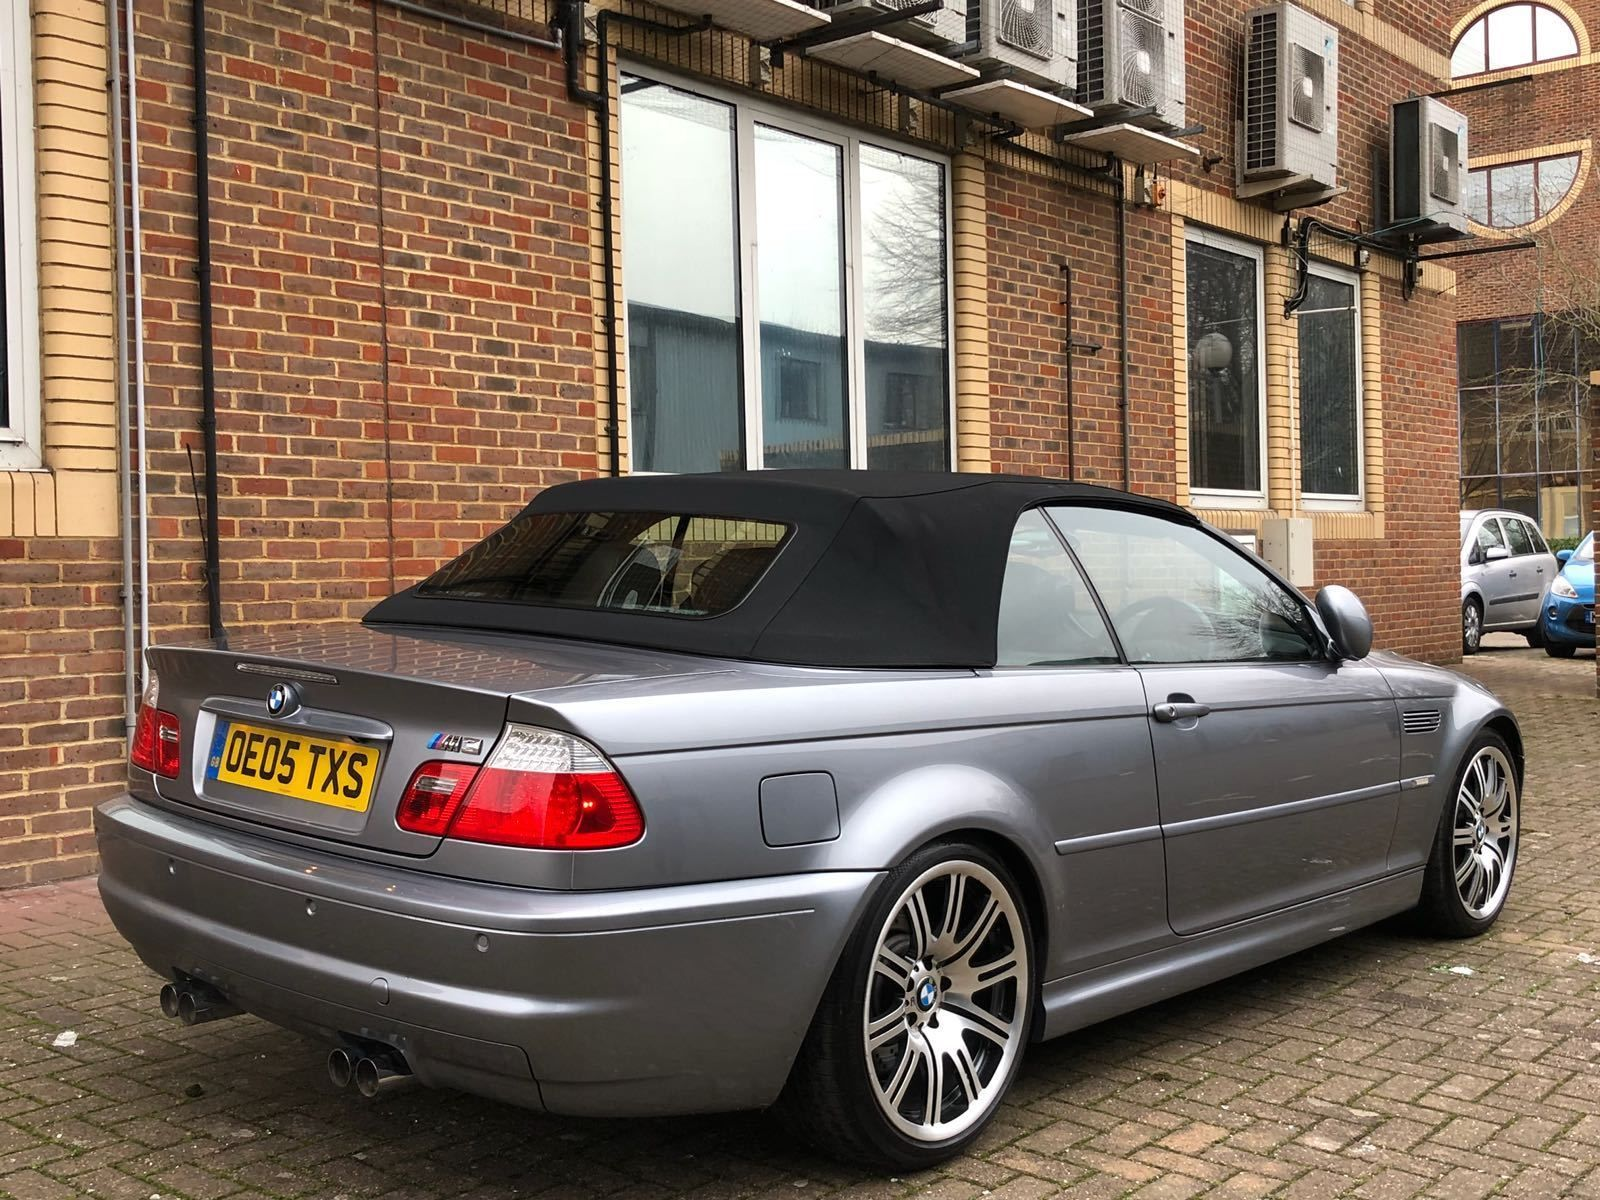 Bmw M3 2005 Convertible Low Mileage Excellent Condition Fsh 13 500 00 End Date Tuesday Mar 20 2018 37 47 Gmt Add To Watch List